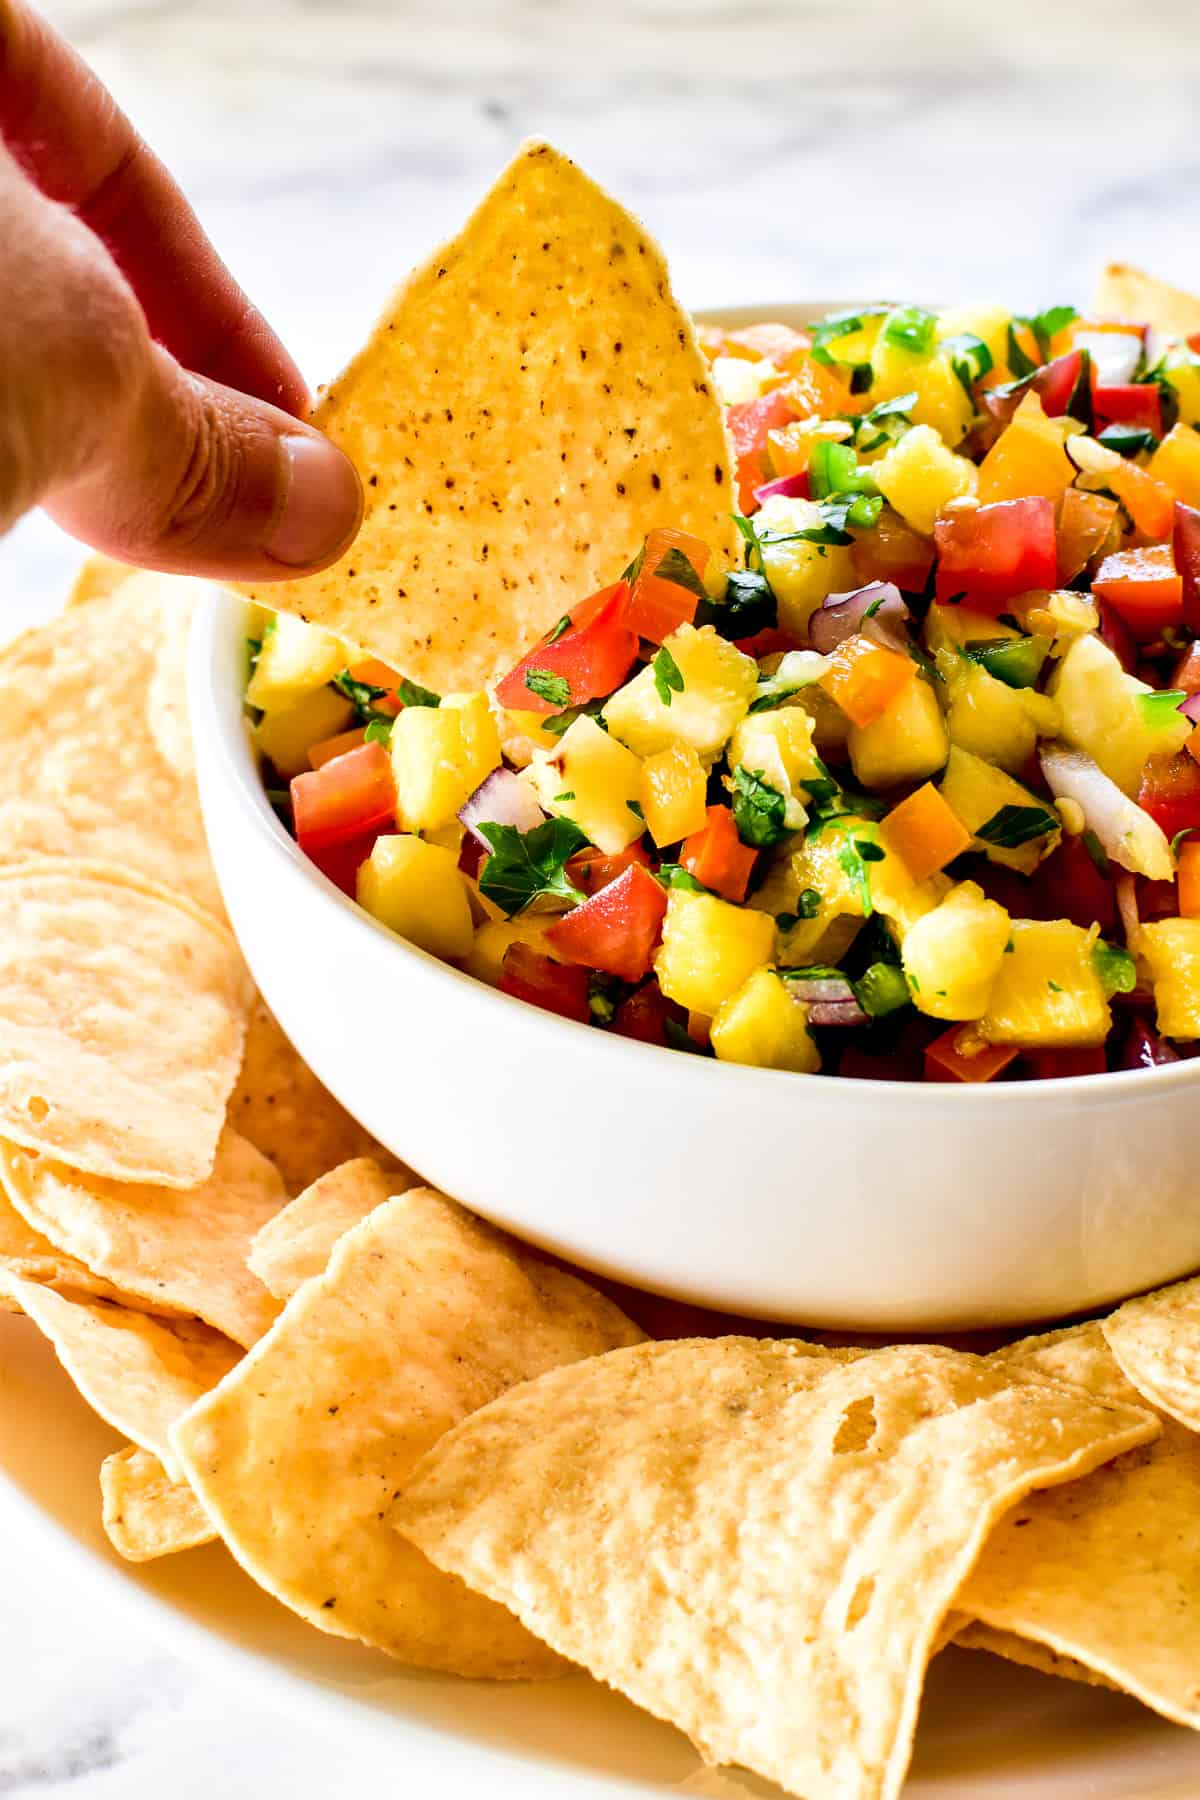 Close up of tortilla chip being dipped into pineapple salsa